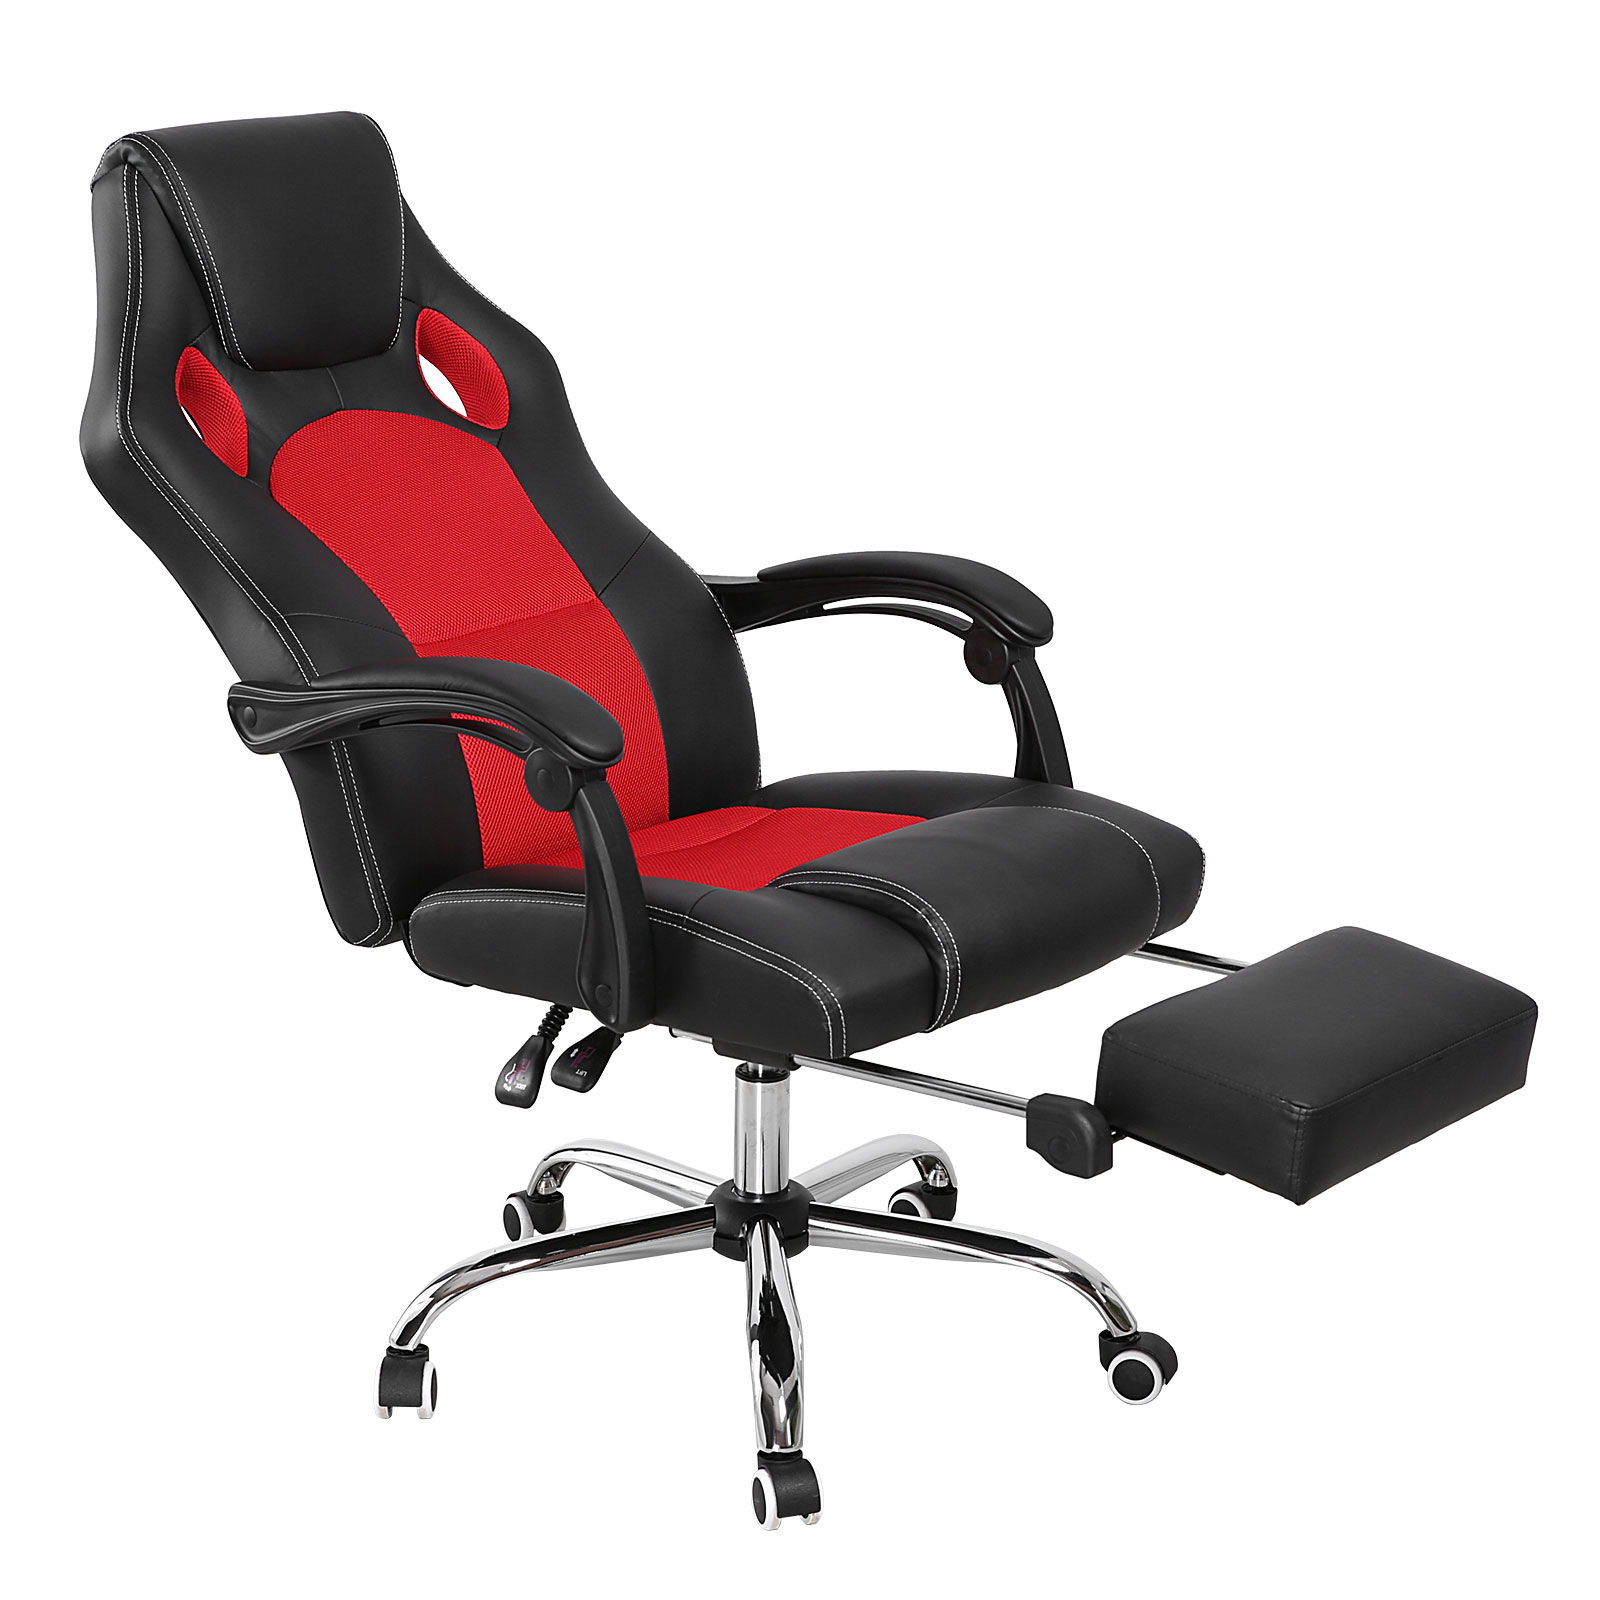 High Back Racing Chair Gaming Swivel Chair Black & Red